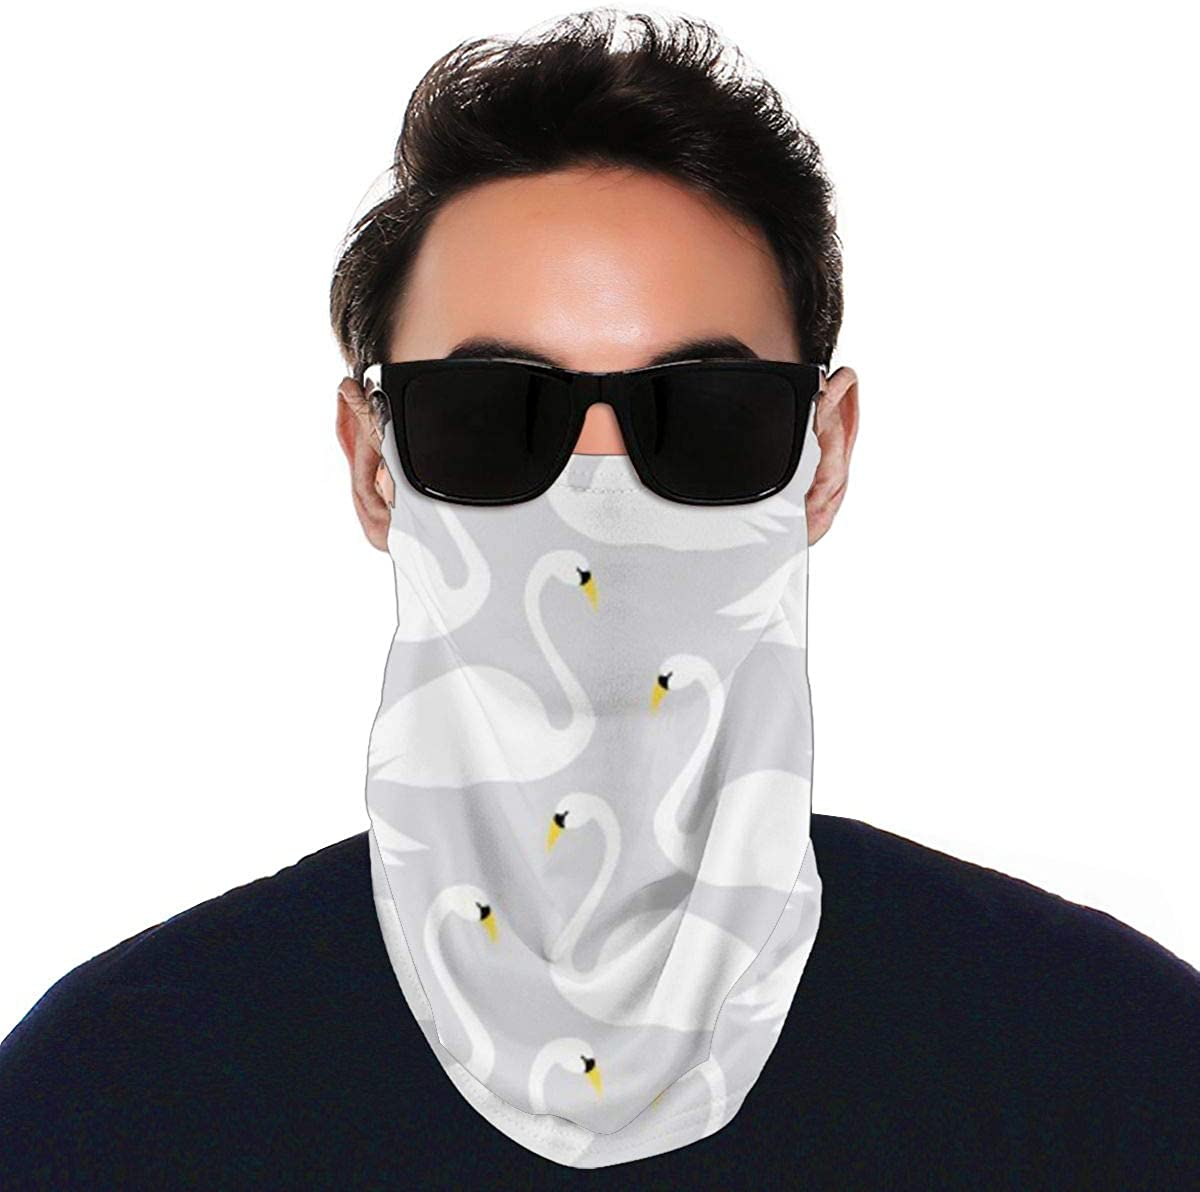 Face Cover Bandana With Ear Loops Scarf Swan Pattern Neck Gaiters Sun Uv Dust Protection For Men Women